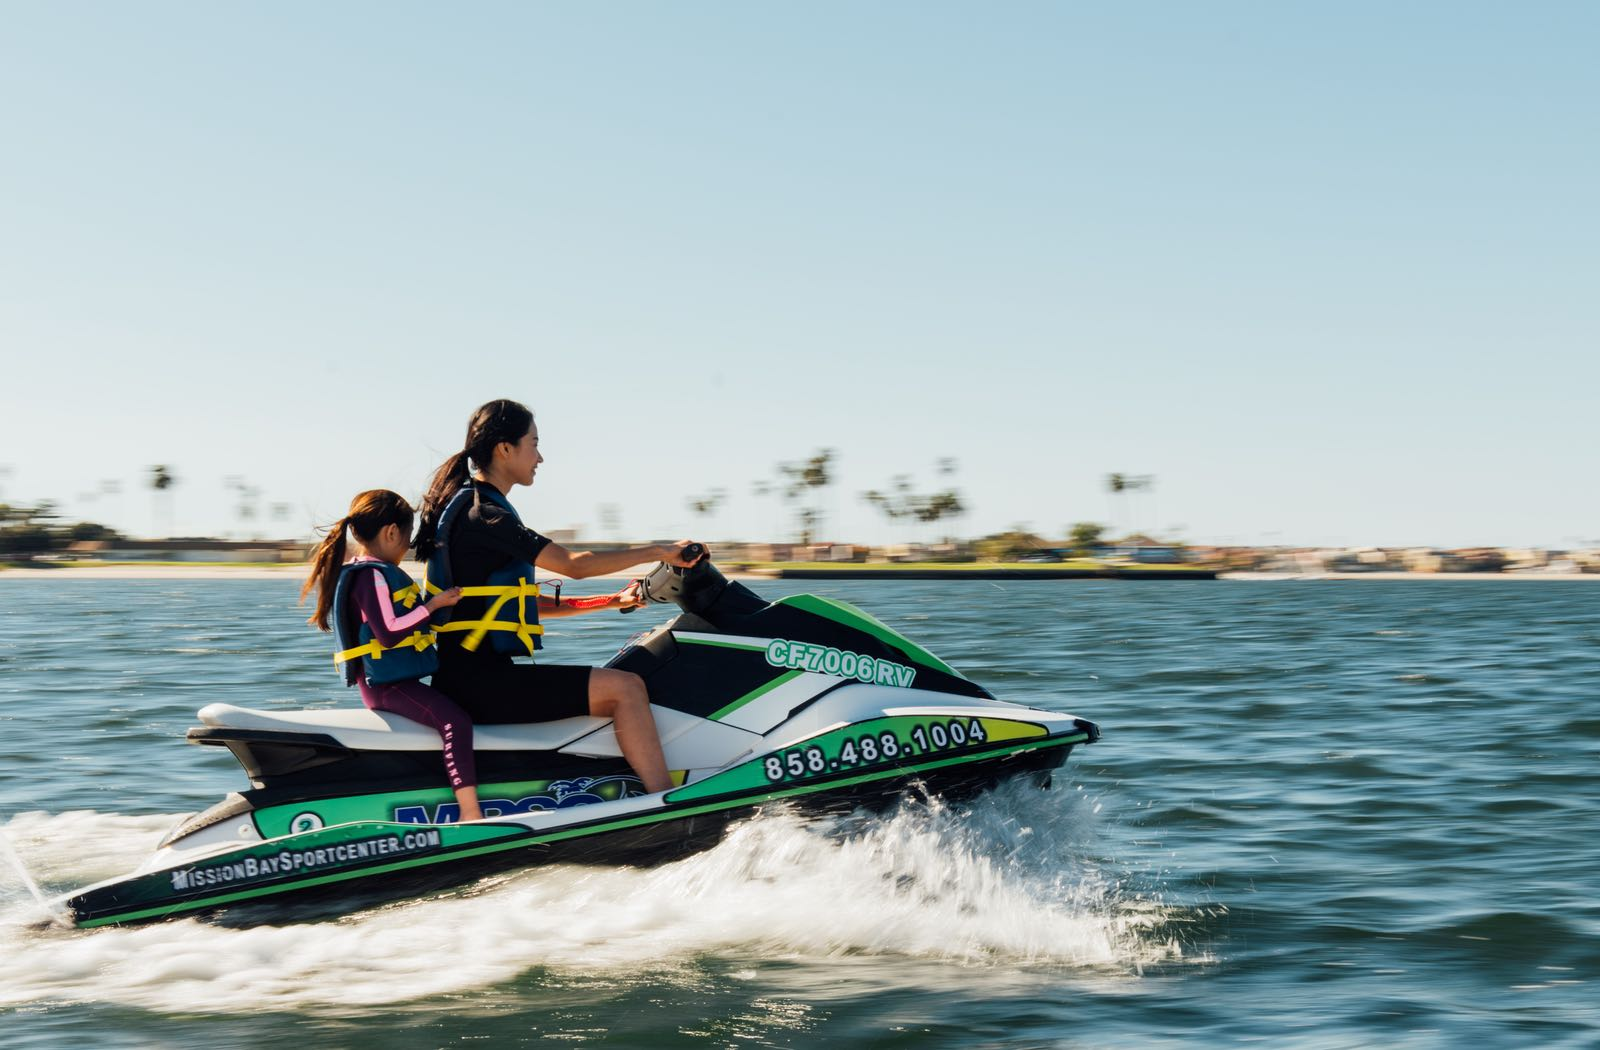 Mom and Daughter on a Jet Ski - Top Things to Do